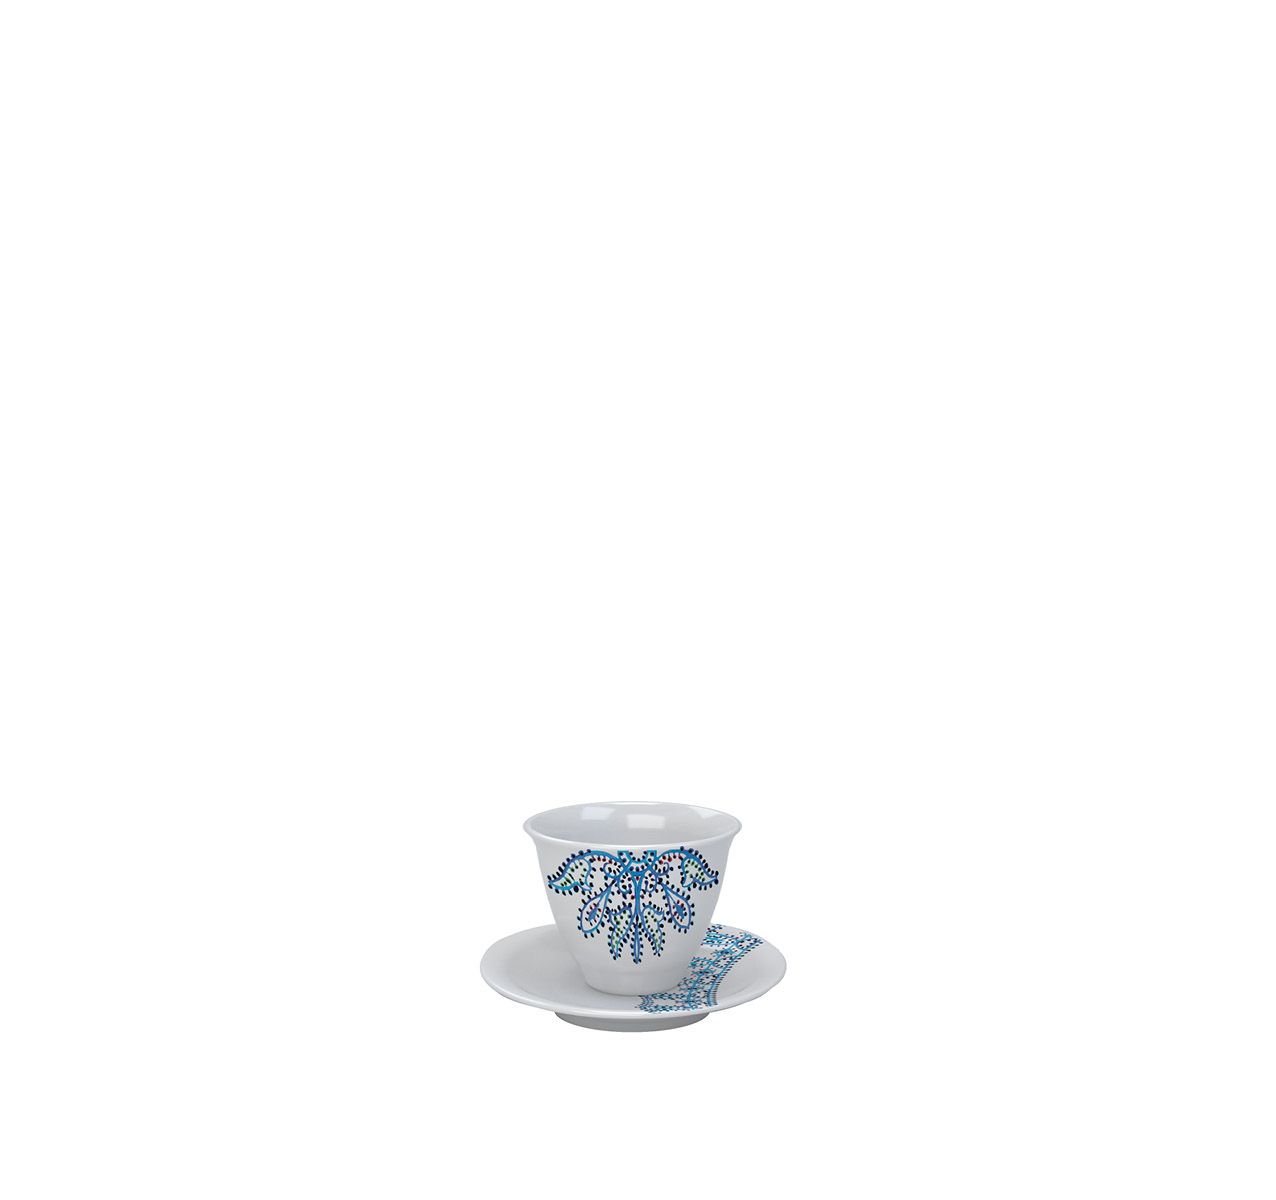 The White Snow Luminarie - Cup With Saucer Set of 6 Porcelain